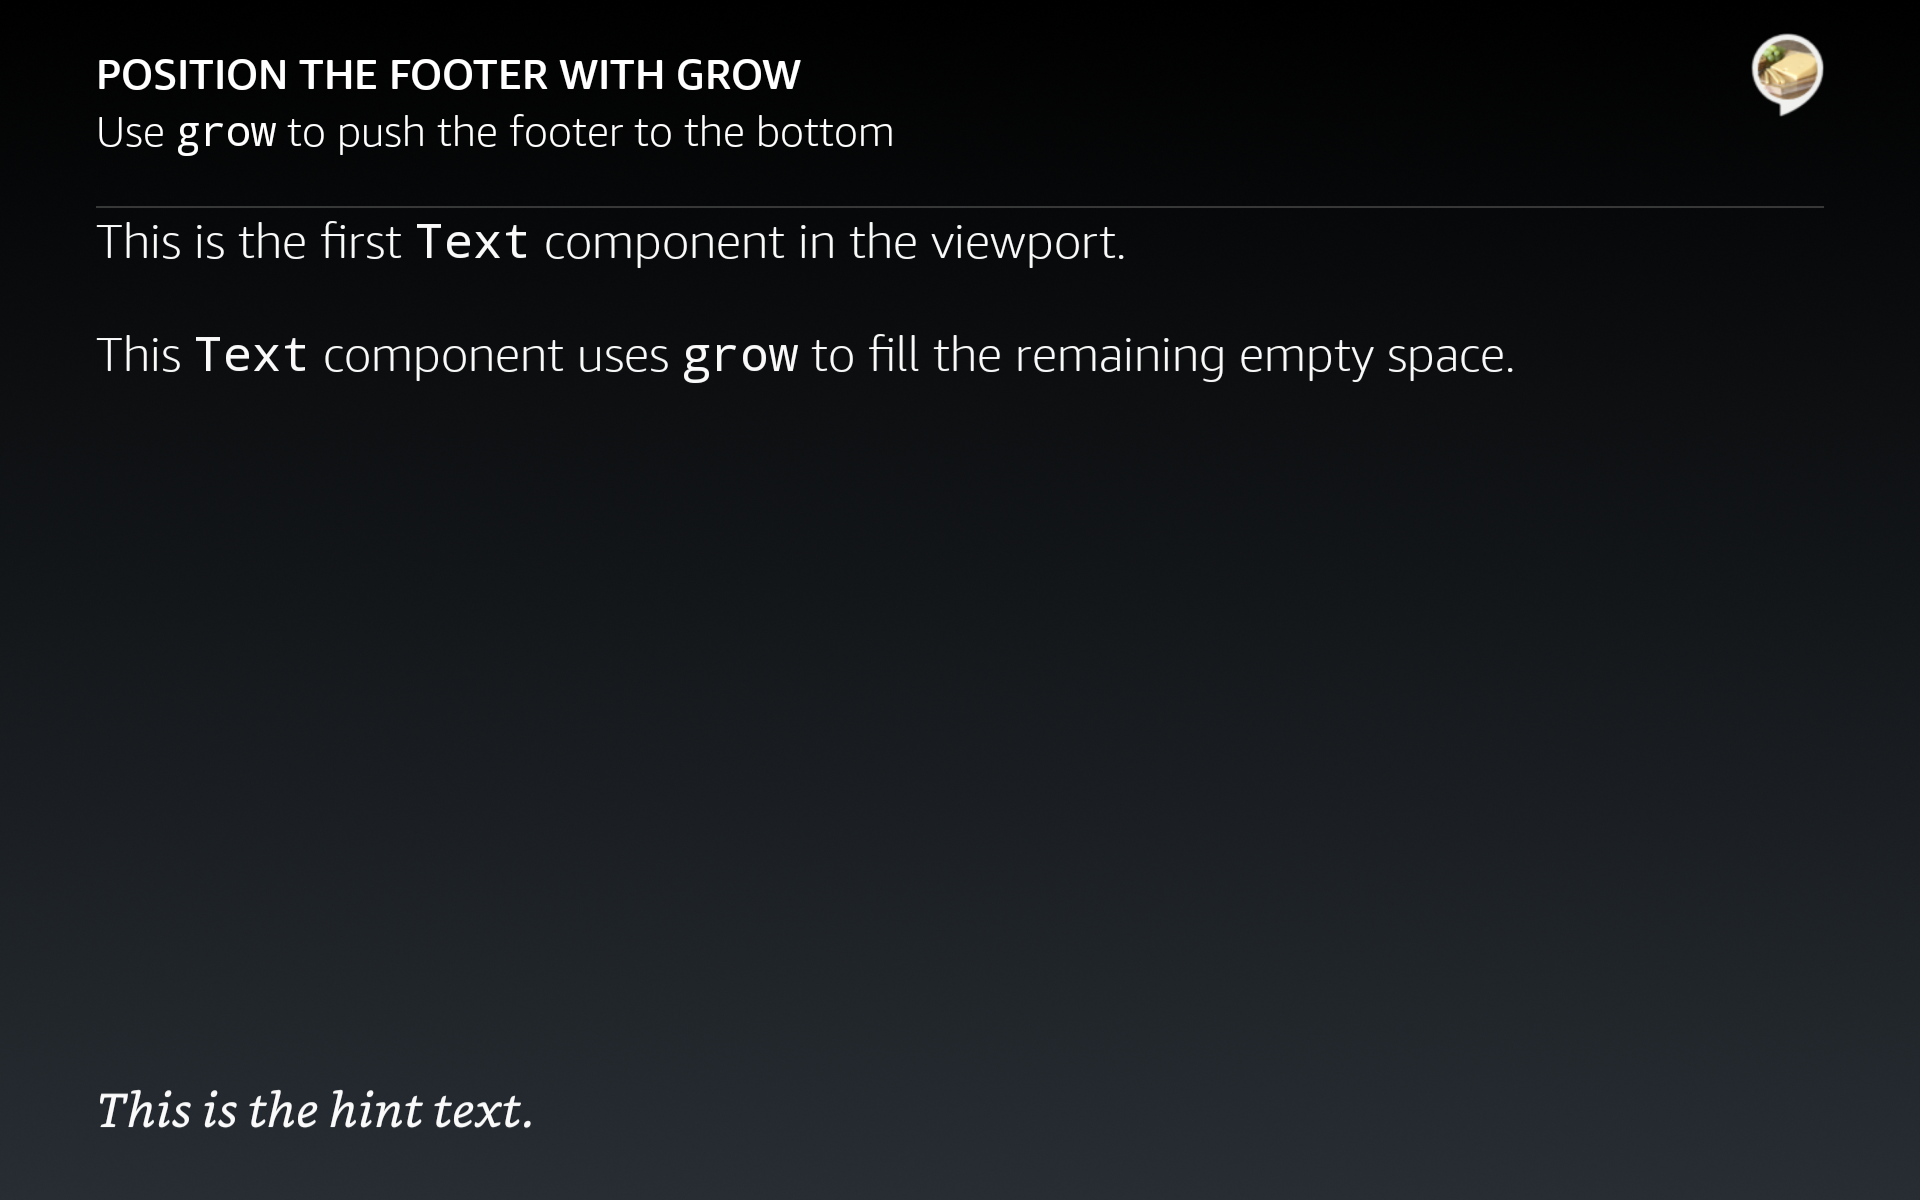 Footer pushed to the bottom of the viewport with grow